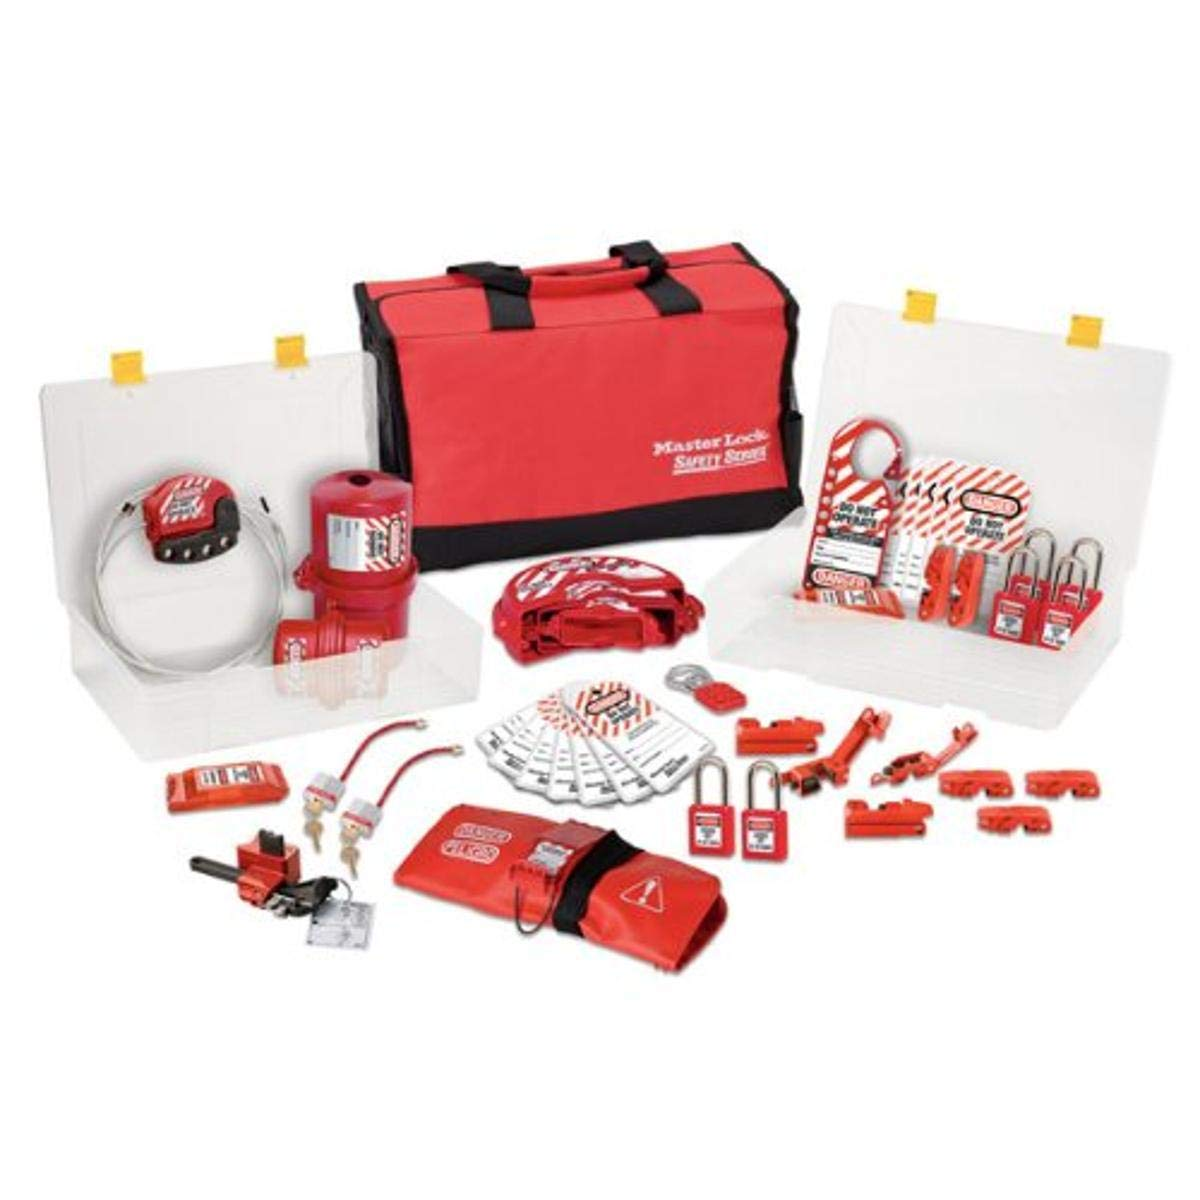 Master Lock Spring new work one after another Portable shop Valve and Kit Lockout Organi Electrical